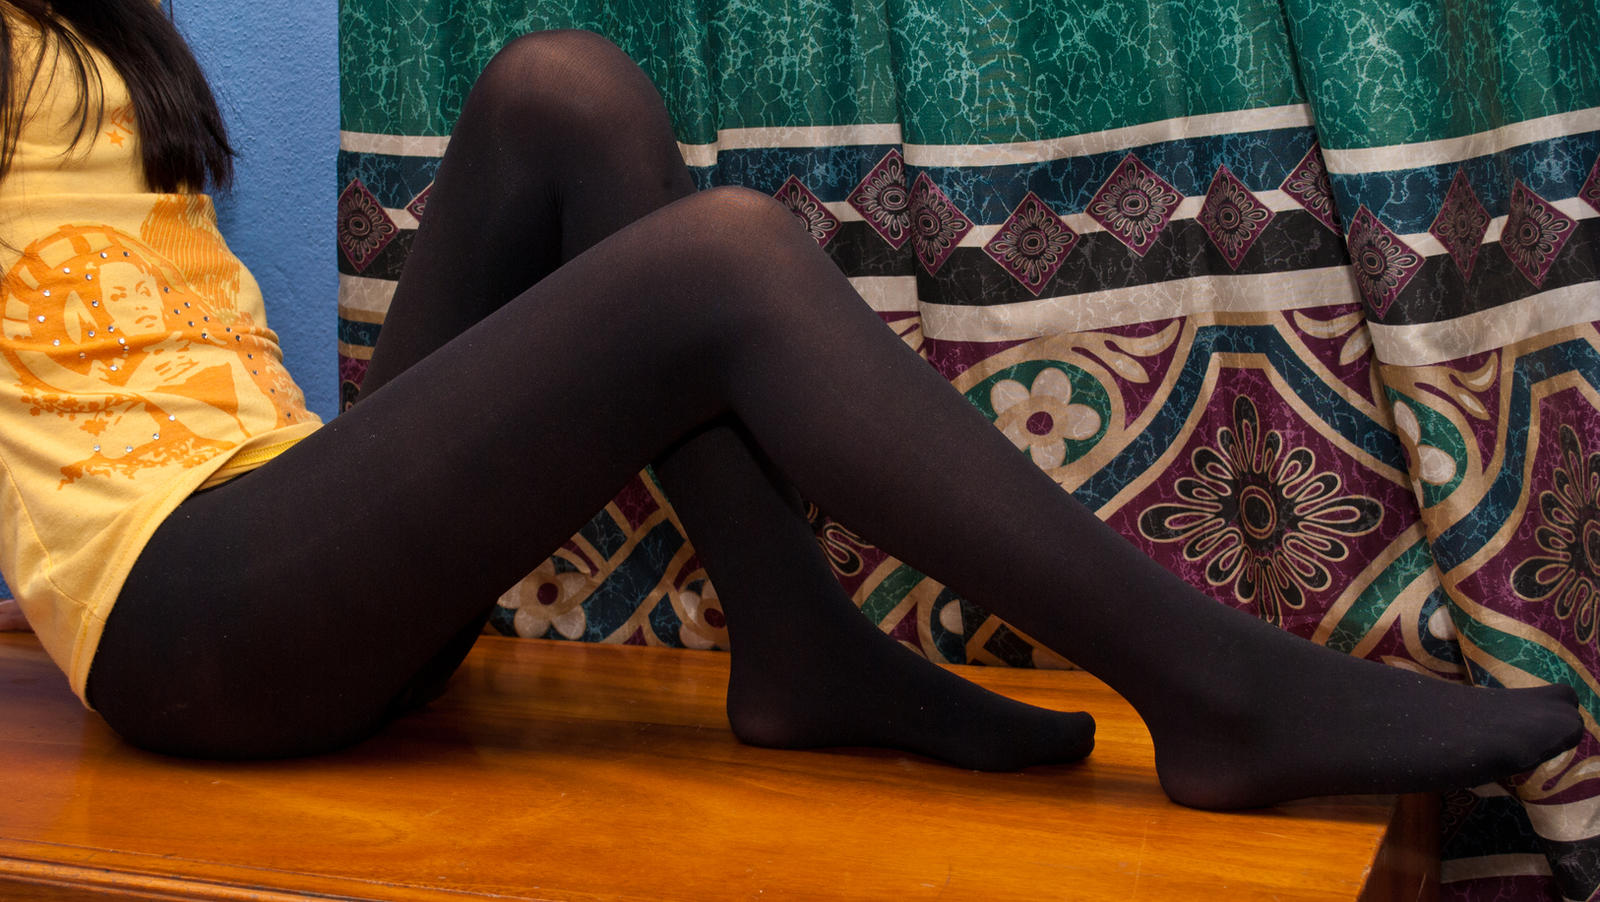 Do Black Tights Go With Tan Shoes